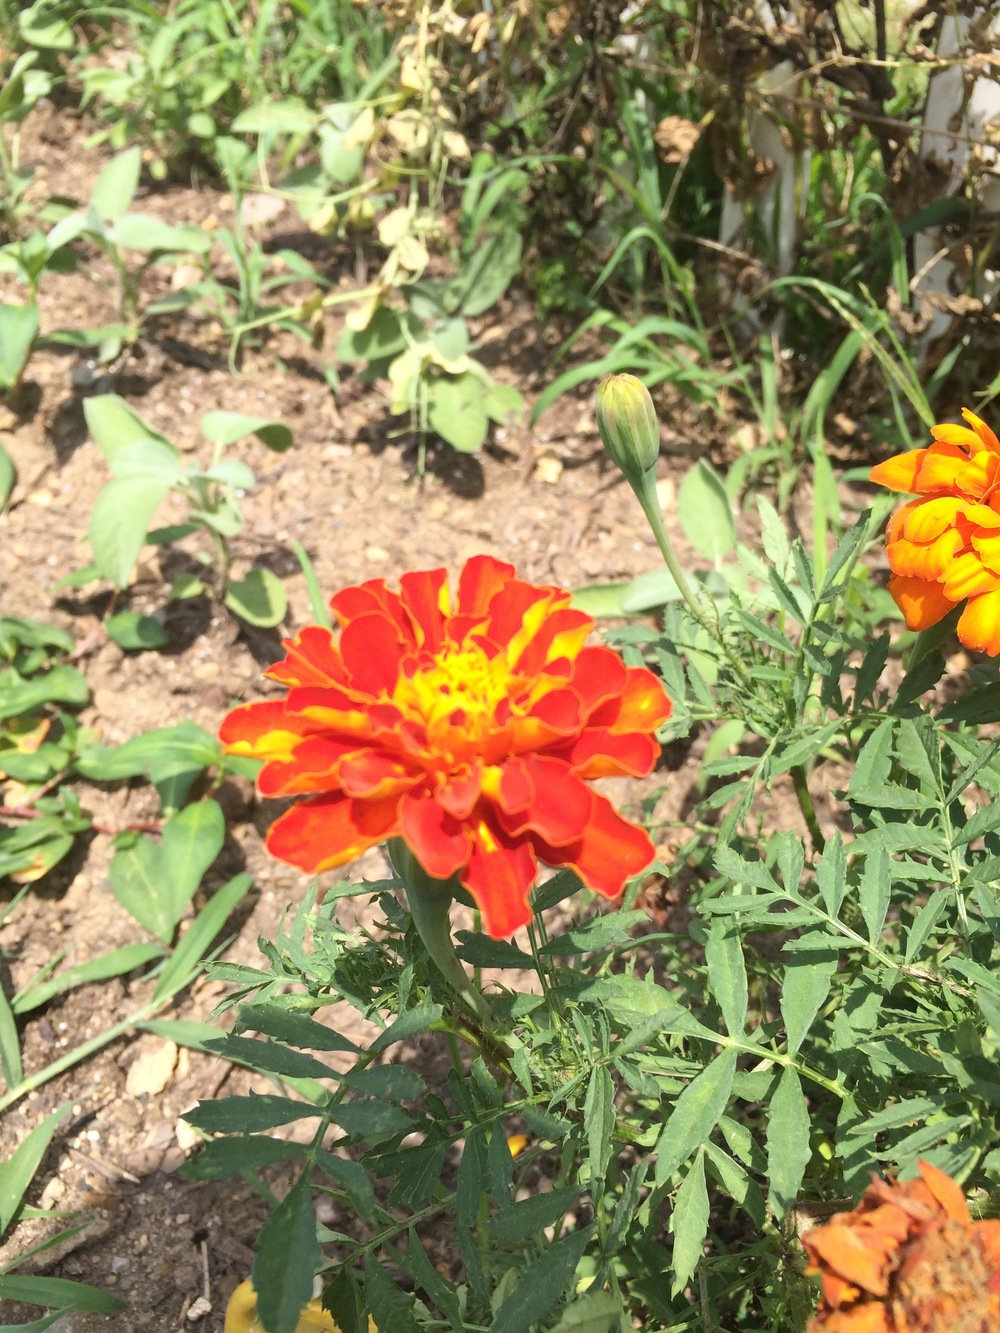 marigolds attract beneficial insects! So we have them around the farm